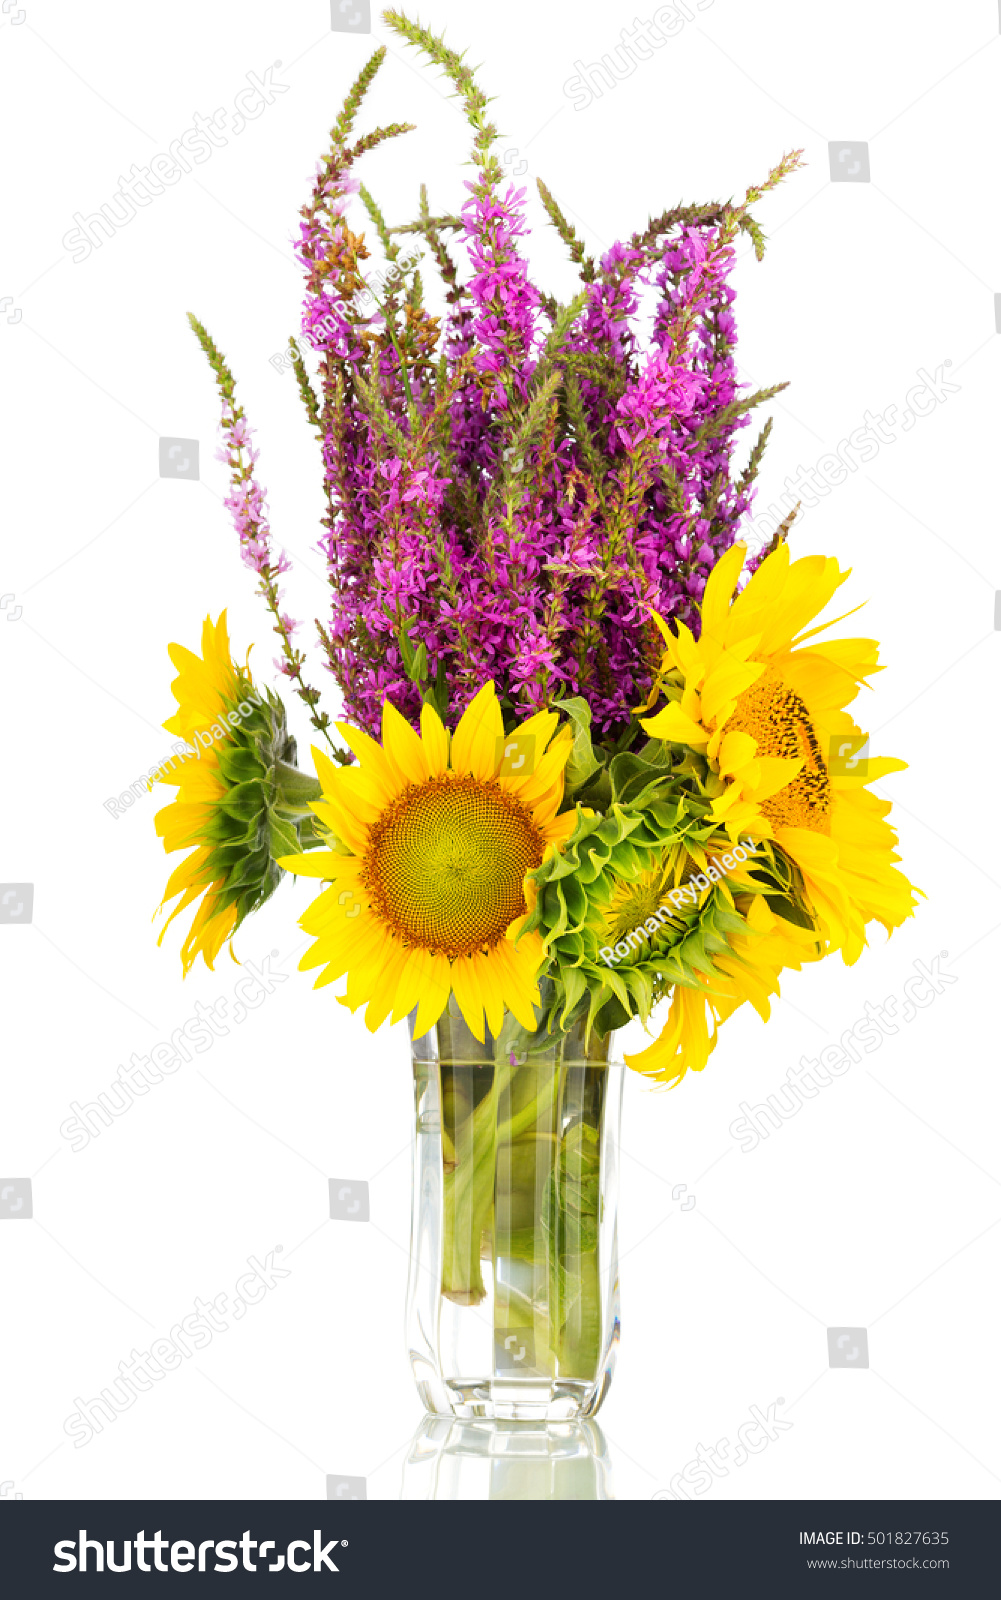 A Big Bunch Of Sunflowers And Purple Wild Sage Flowers In A Vase